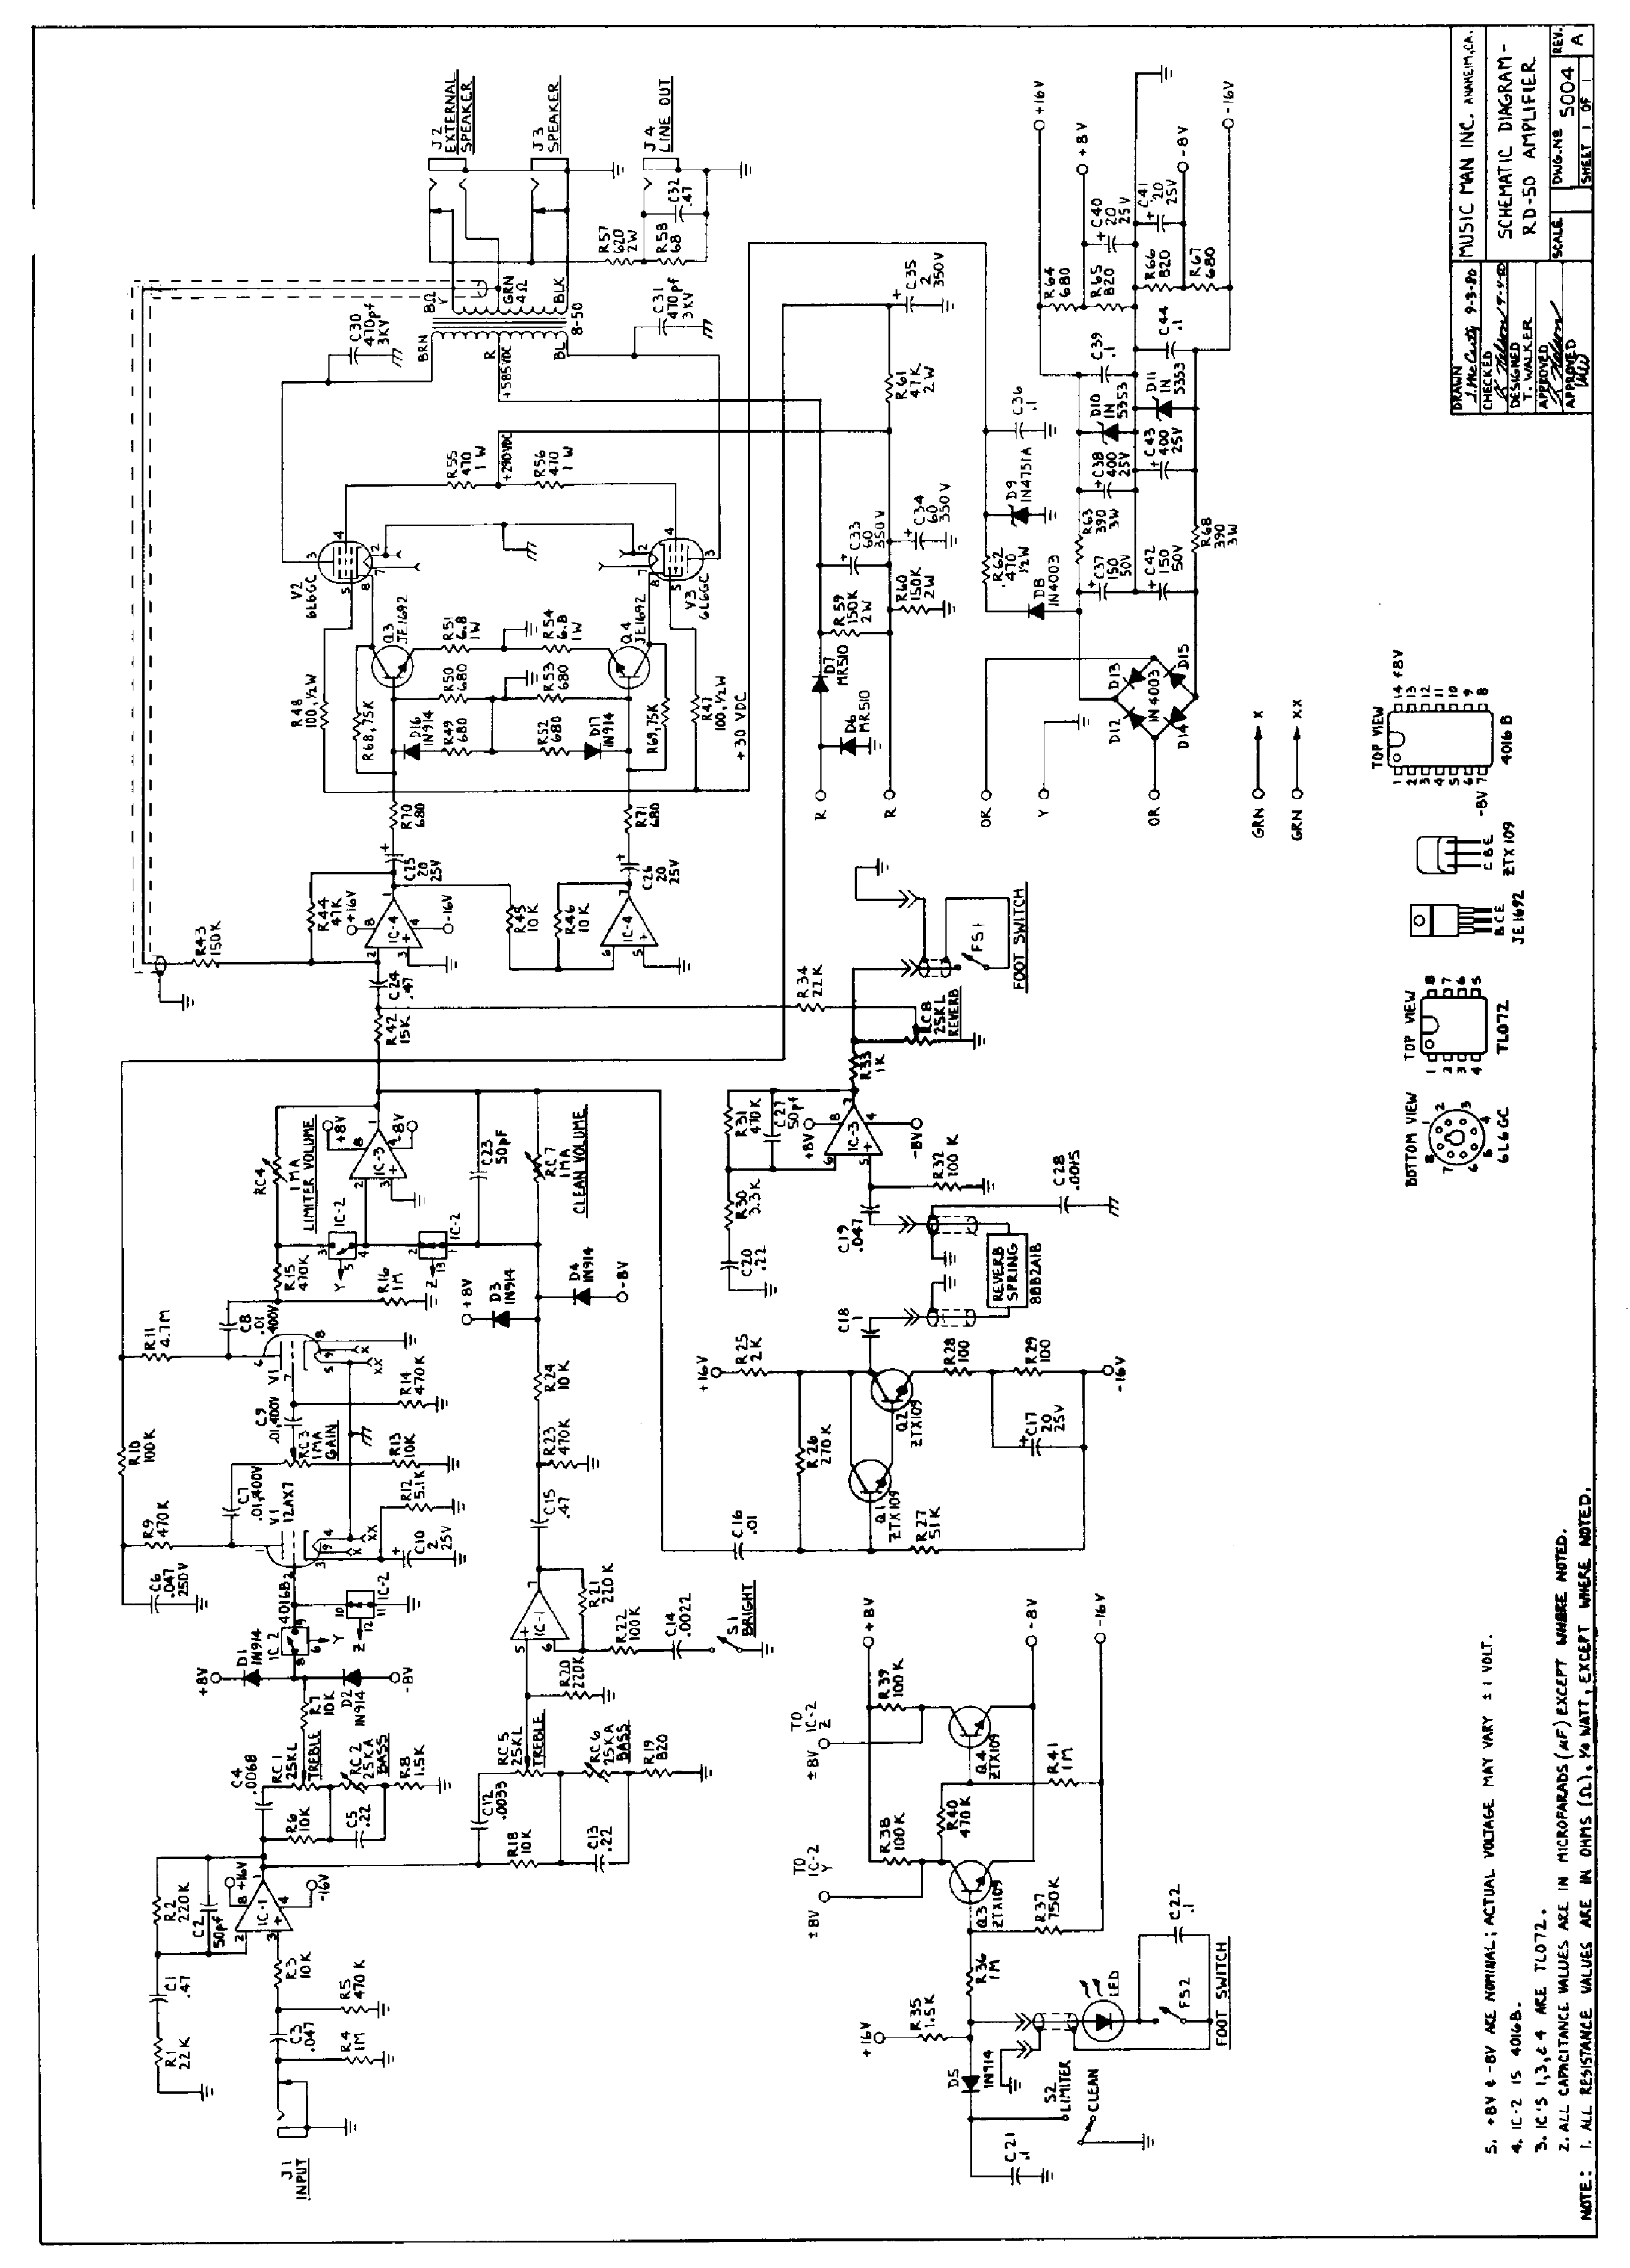 medium resolution of schematic diagram of boss bf 2 flanger pedal fx circuits guitar pedals electronics audio amplifier